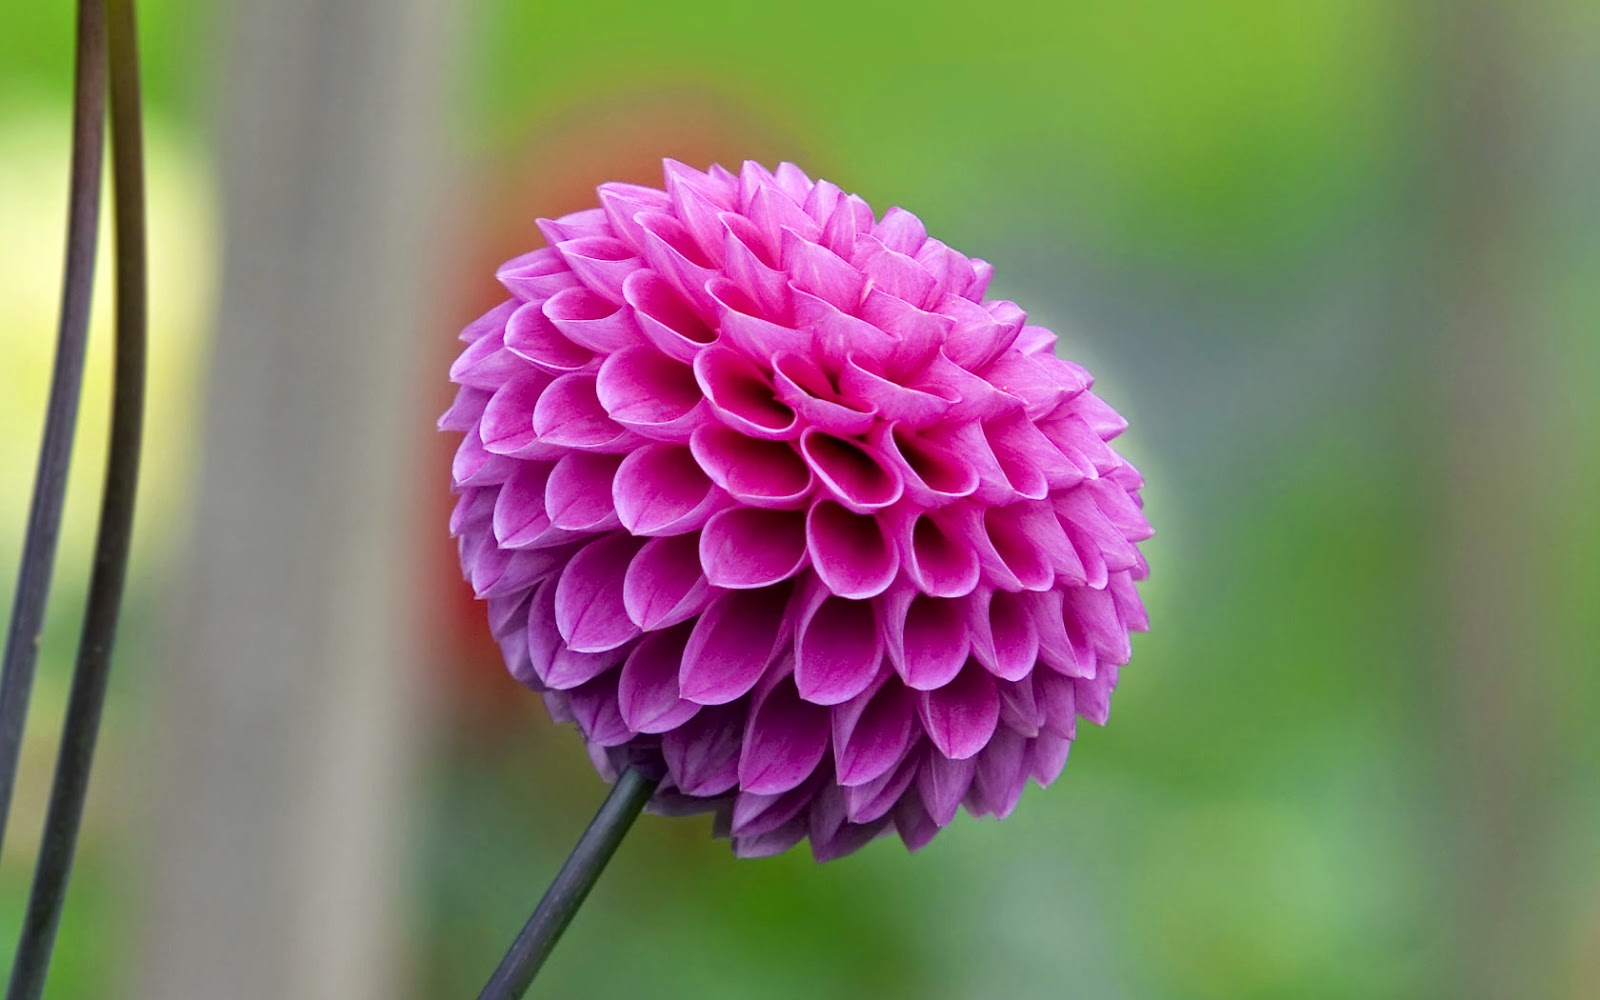 Flower photos most beautiful flowers in the world dahlia Beautiful flowers photos